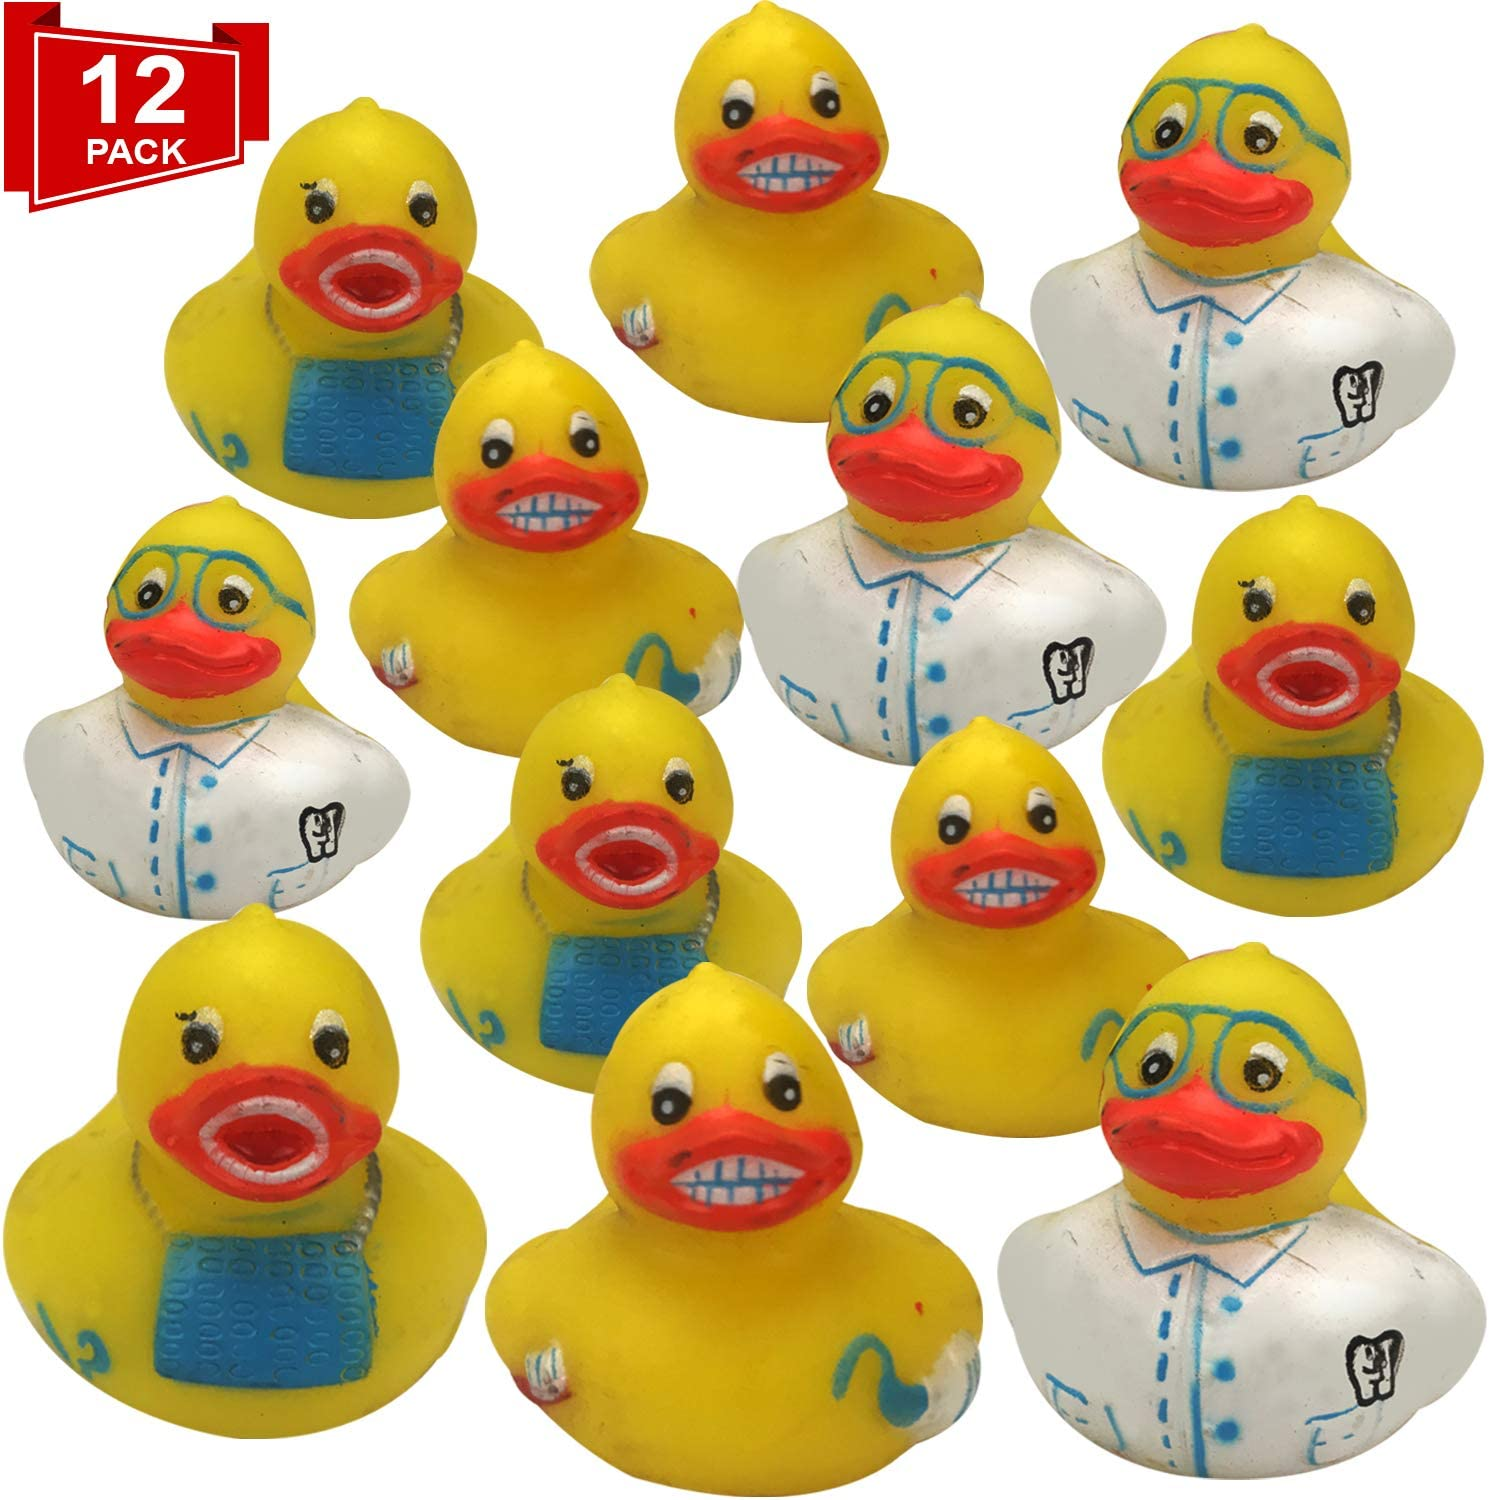 Livativ Playko 2 Inch Rubber Ducks - Rubber Ducks in Bulk - Rubber Duckies - Rubber Ducks for Pool - Pool Floats for Kids - Colorful Bathtub Toys (Dental Rubber Duckies (Pack of 12))